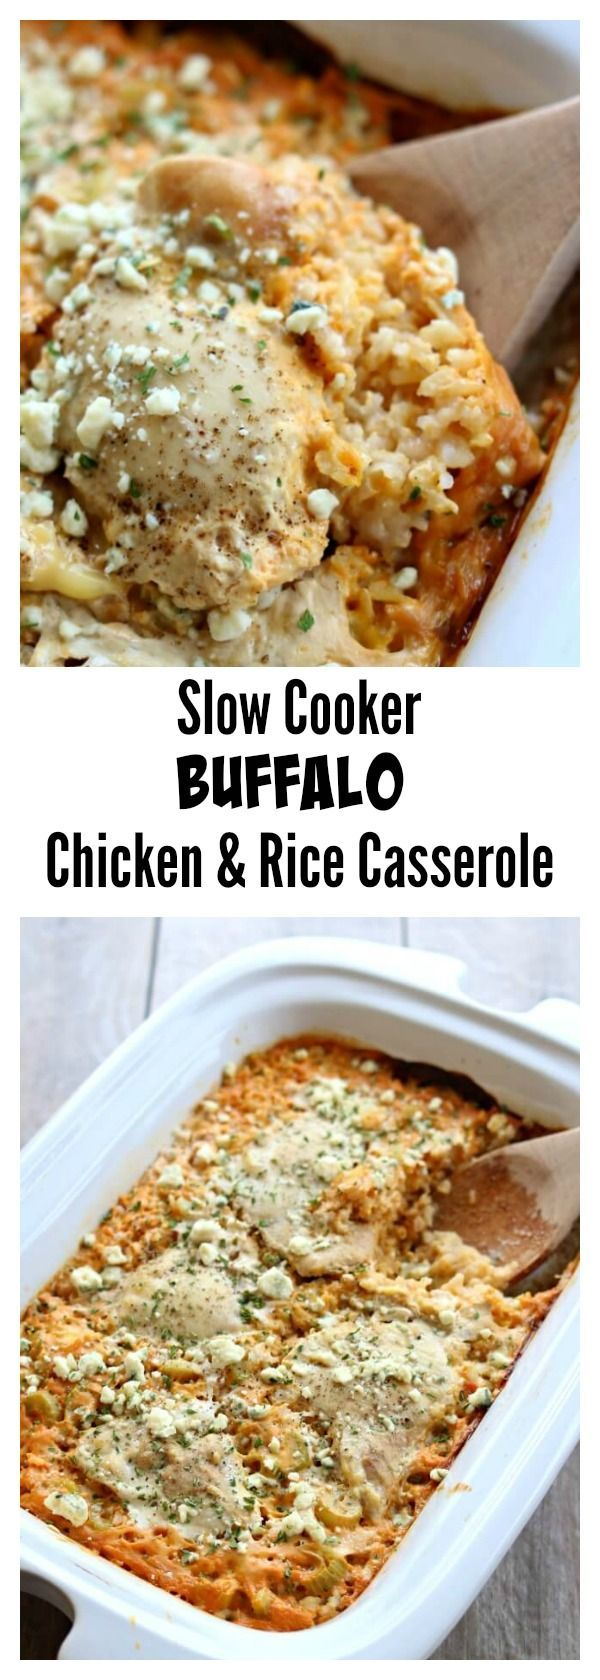 Slow Cooker Buffalo Chicken Rice Casserole–this crockpot casserole has all your favorite flavors from a platter of chicken wings in one pan. It starts with brown rice (you can substitute white if you'd like), sliced celery, chicken, spicy buffalo sauce and then it's topped with bleu cheese.